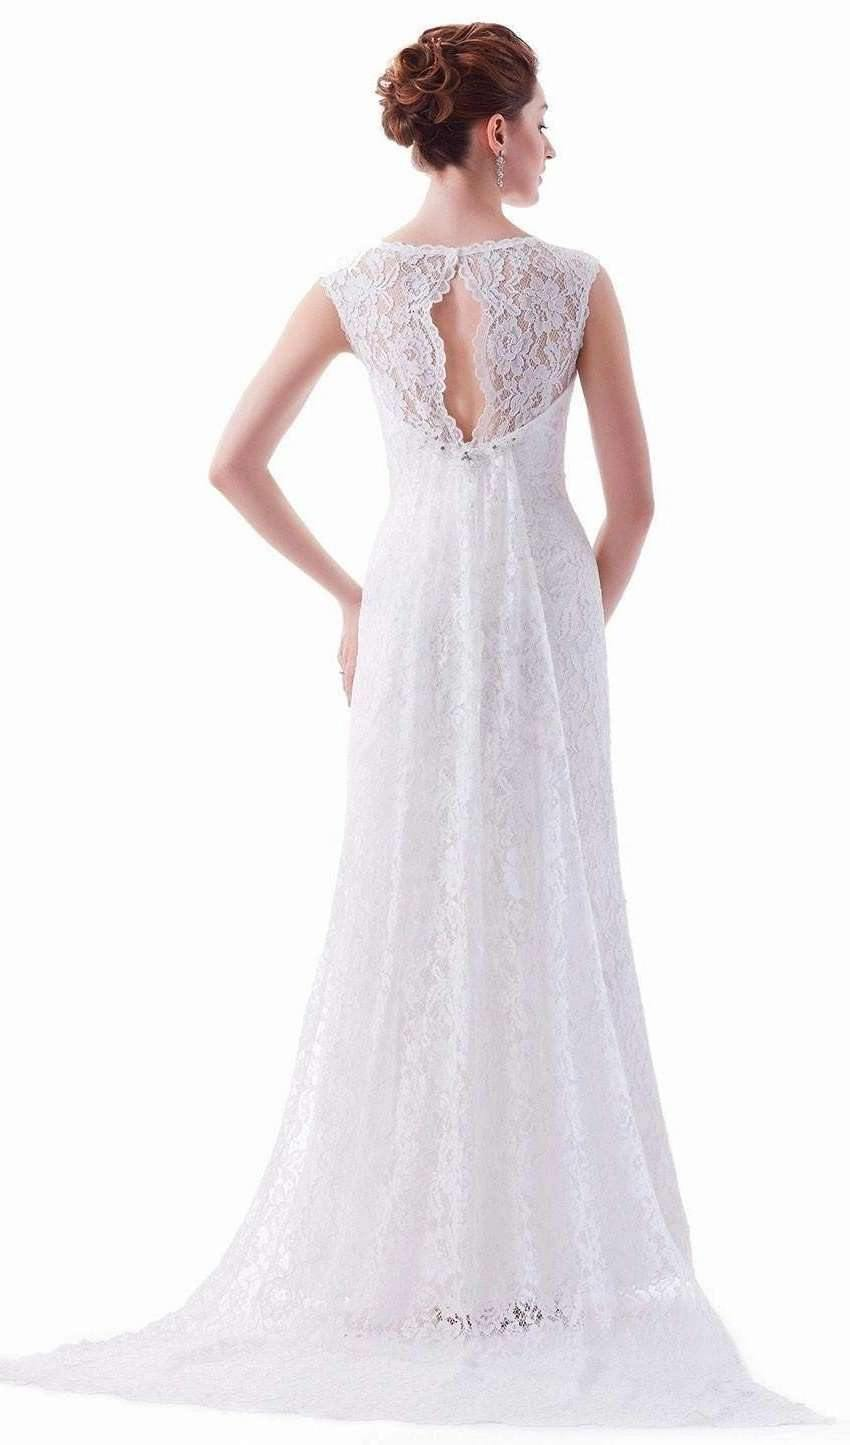 Caroline PLUS - Adore Bridal and Occasion Wear